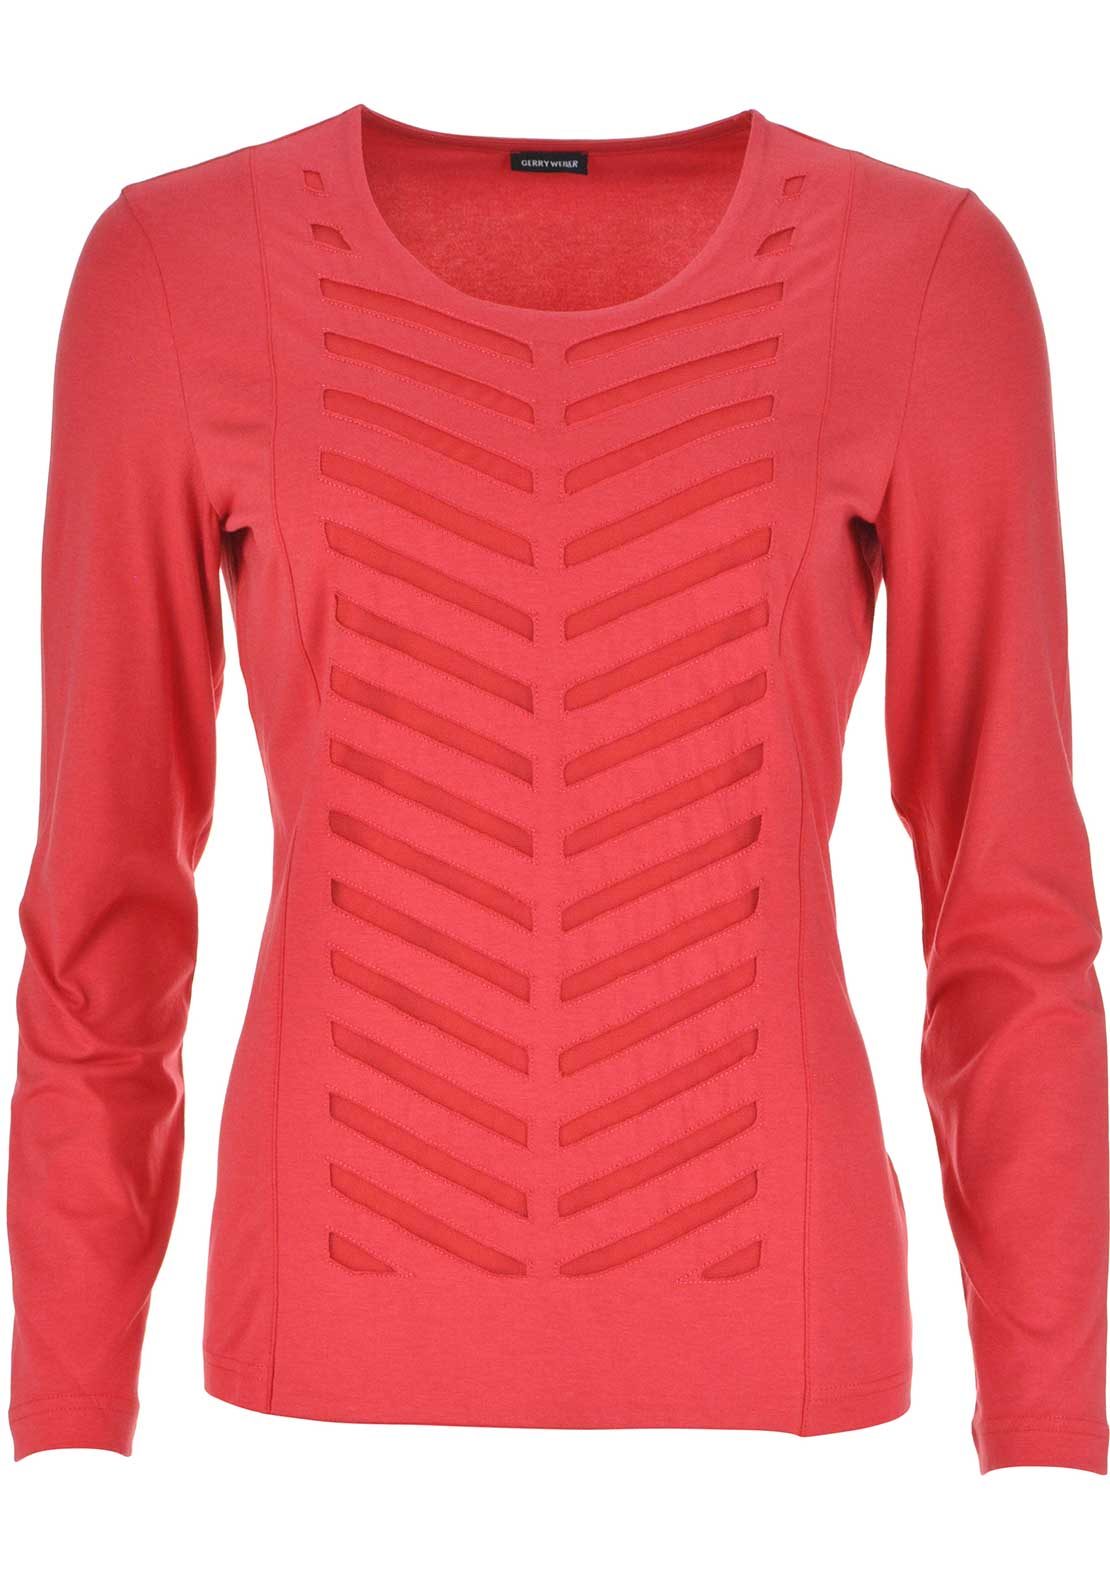 Gerry Weber Mesh Print Long Sleeve Top, Red